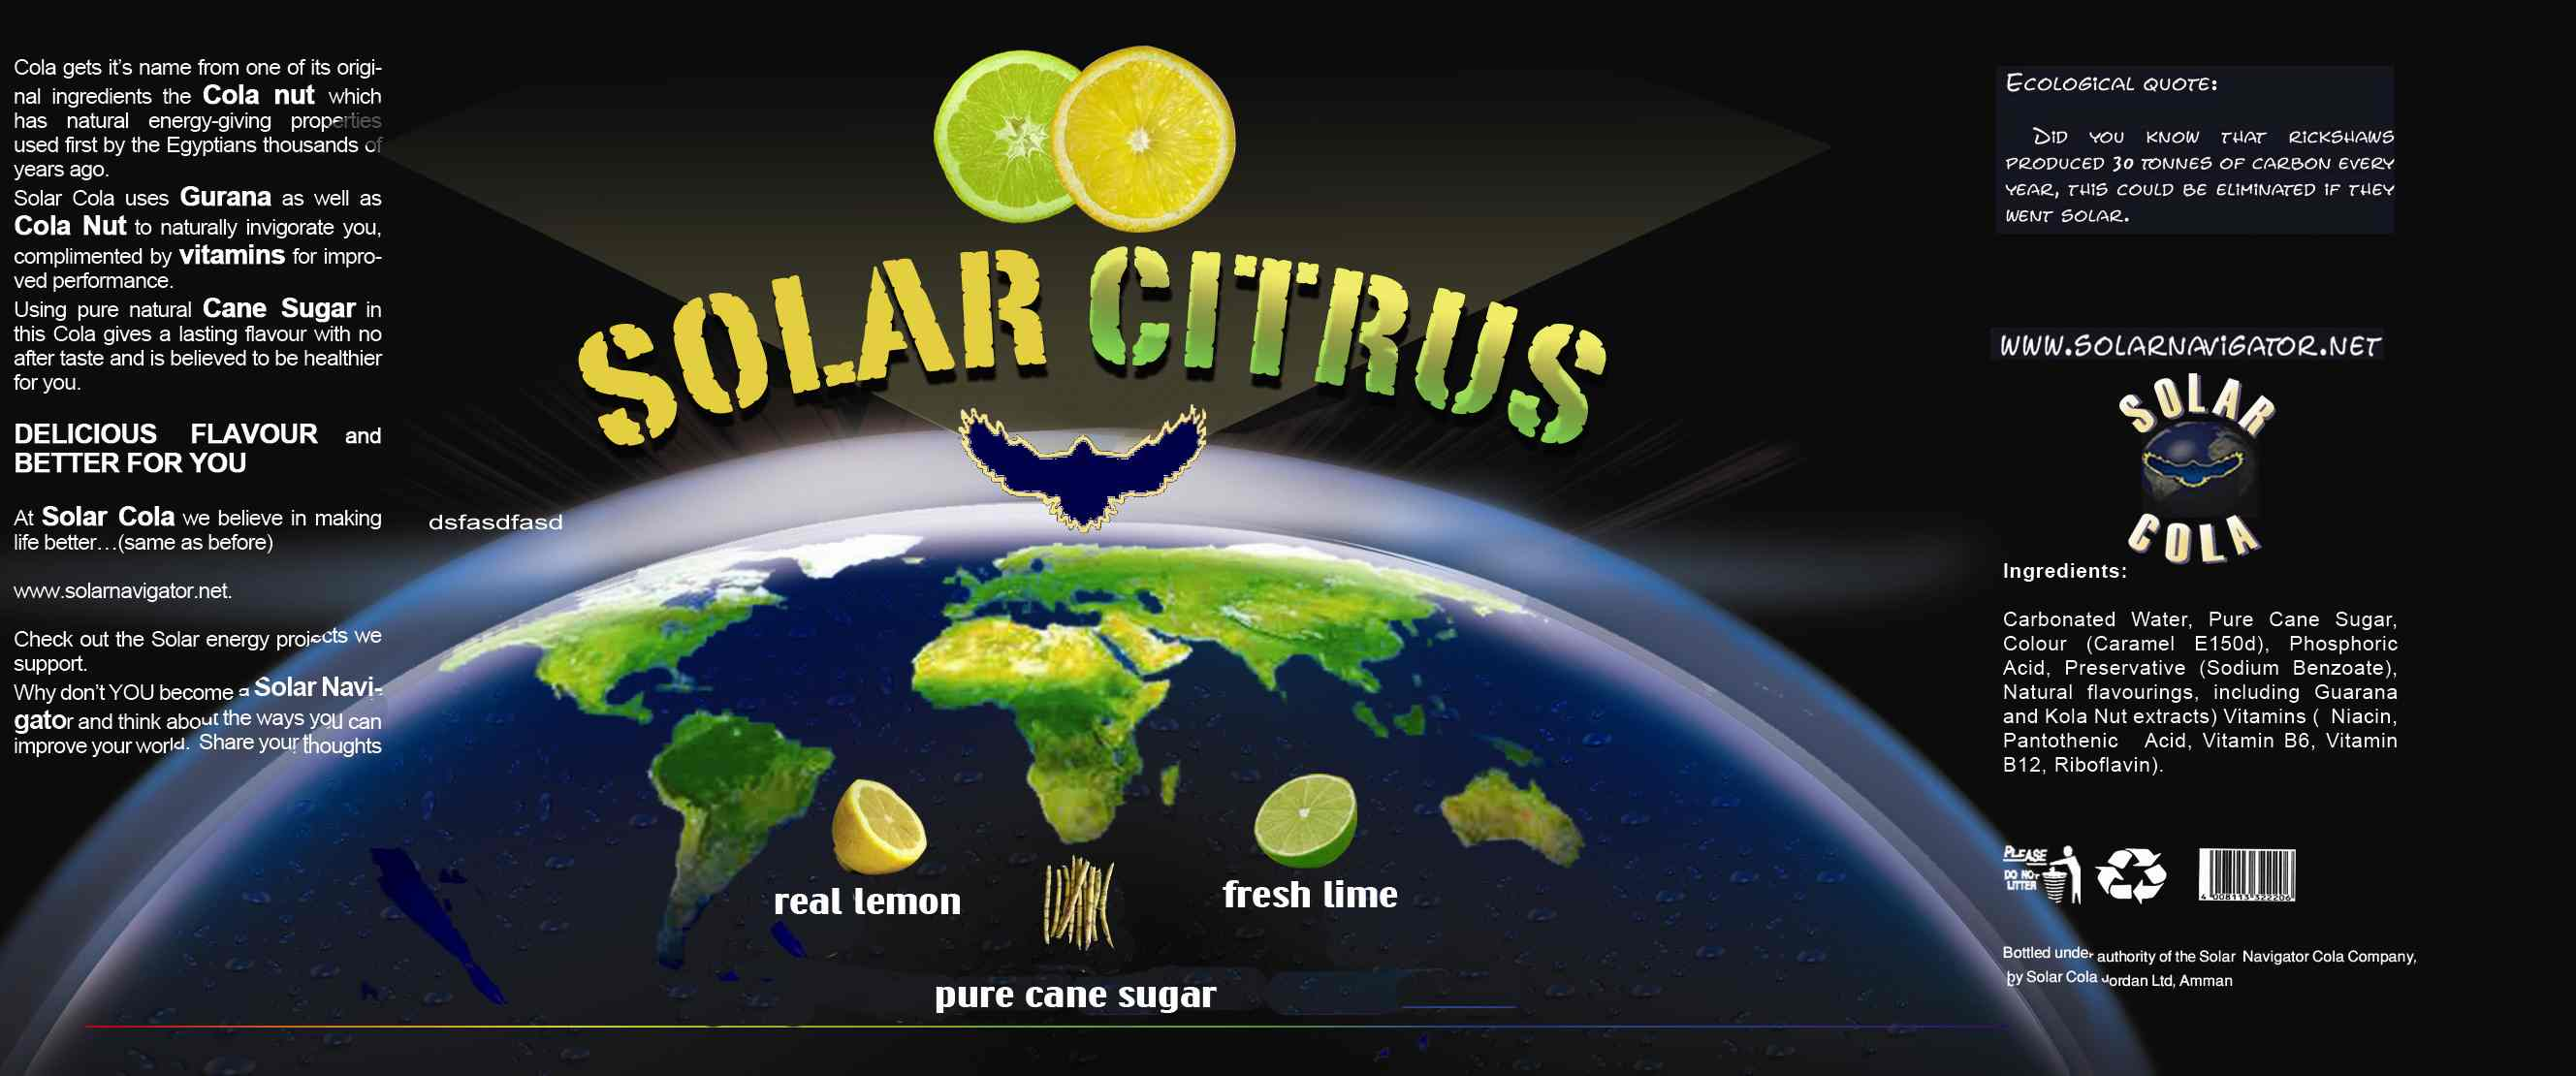 Solar Citrus 330ml can label, natural lemon and lime flavour drink with pure cane sugar